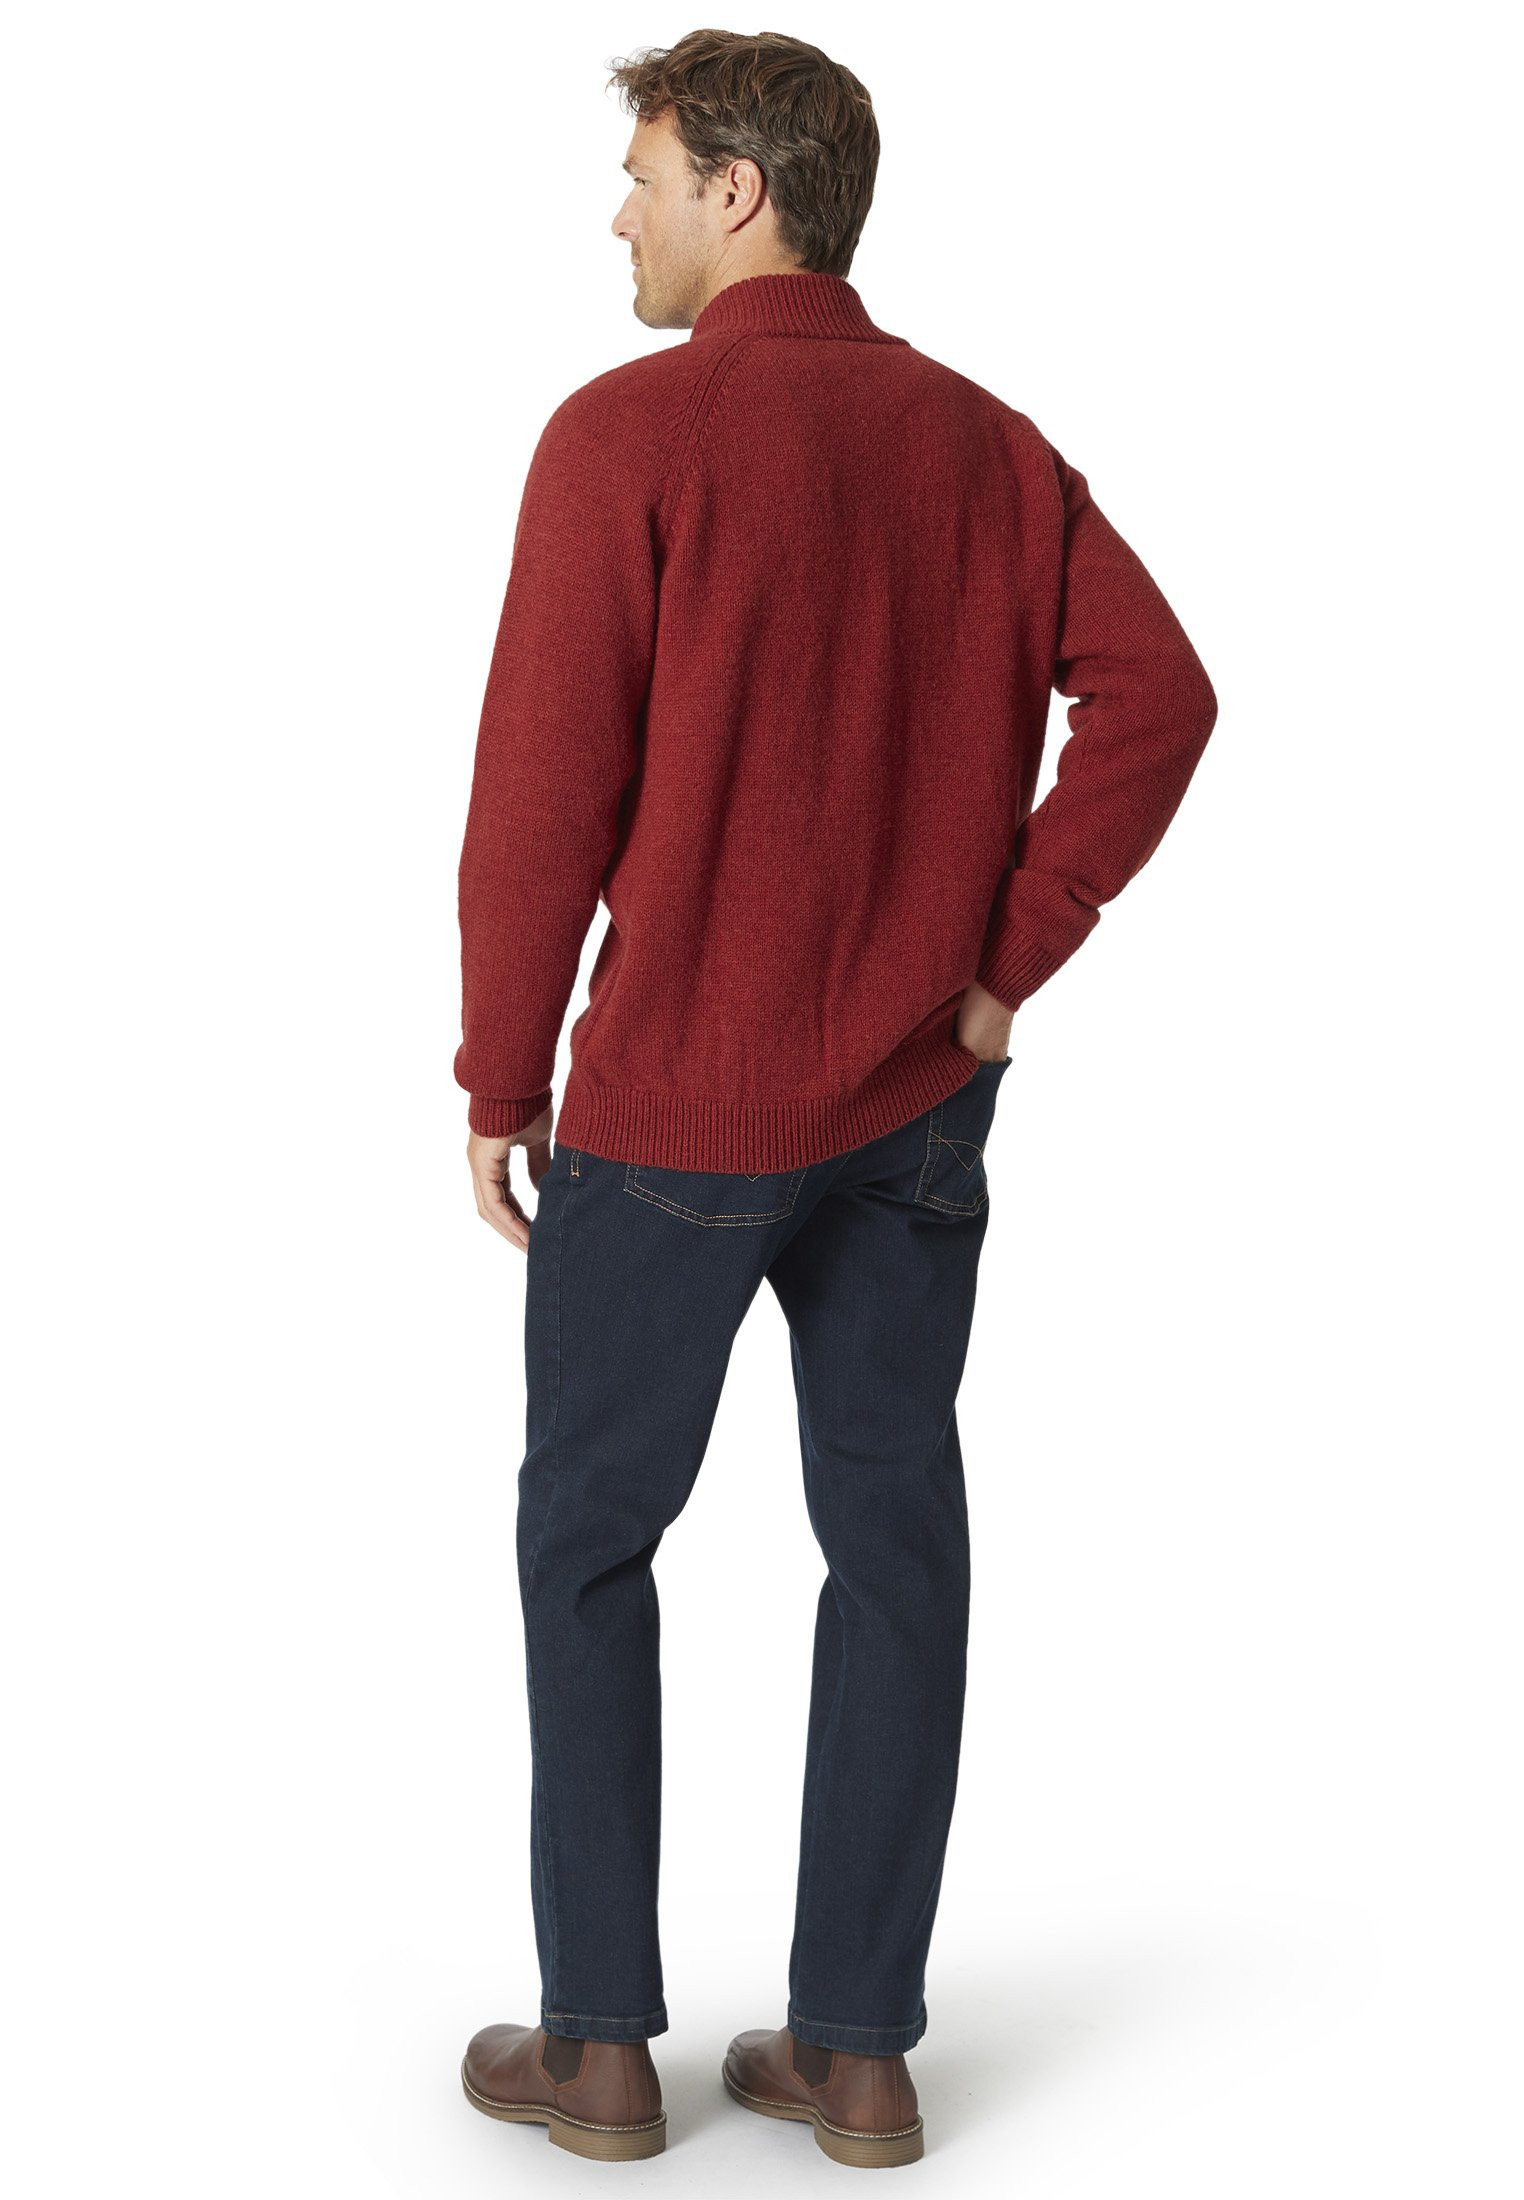 Dartmouth Berry Cable Knit Cardigan